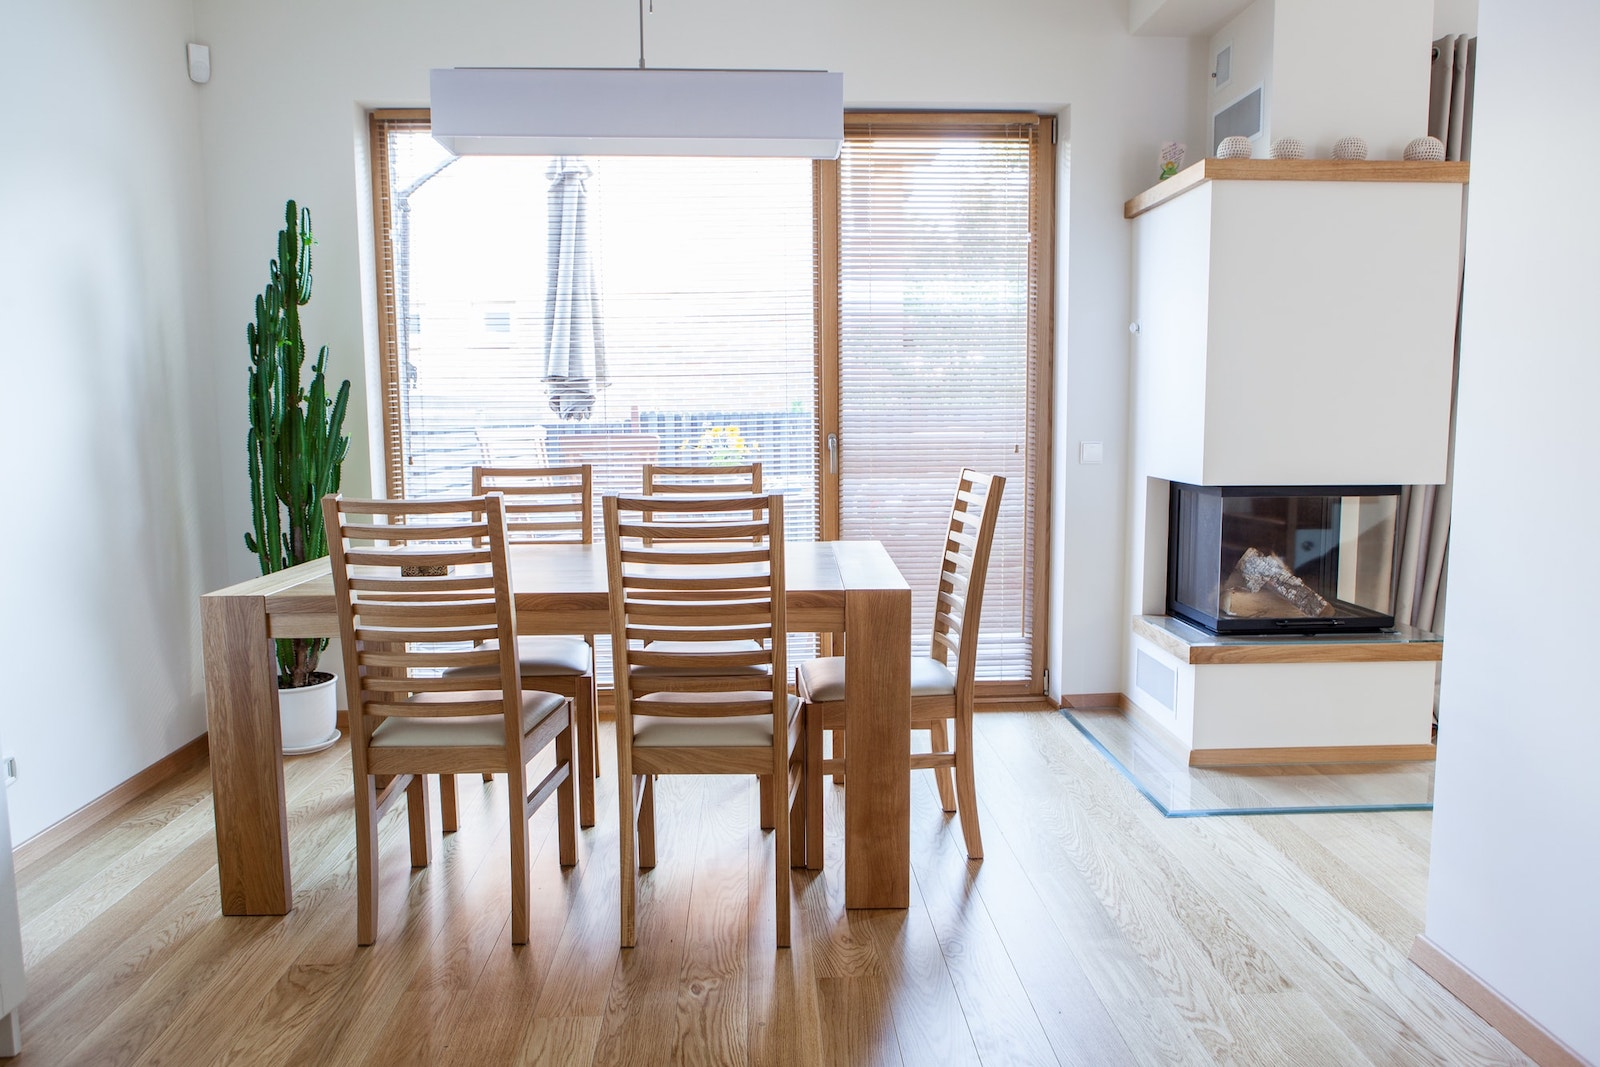 Discover 18 Benefits of Minimalism and how West Coast Junk can help in Pleasanton, CA!